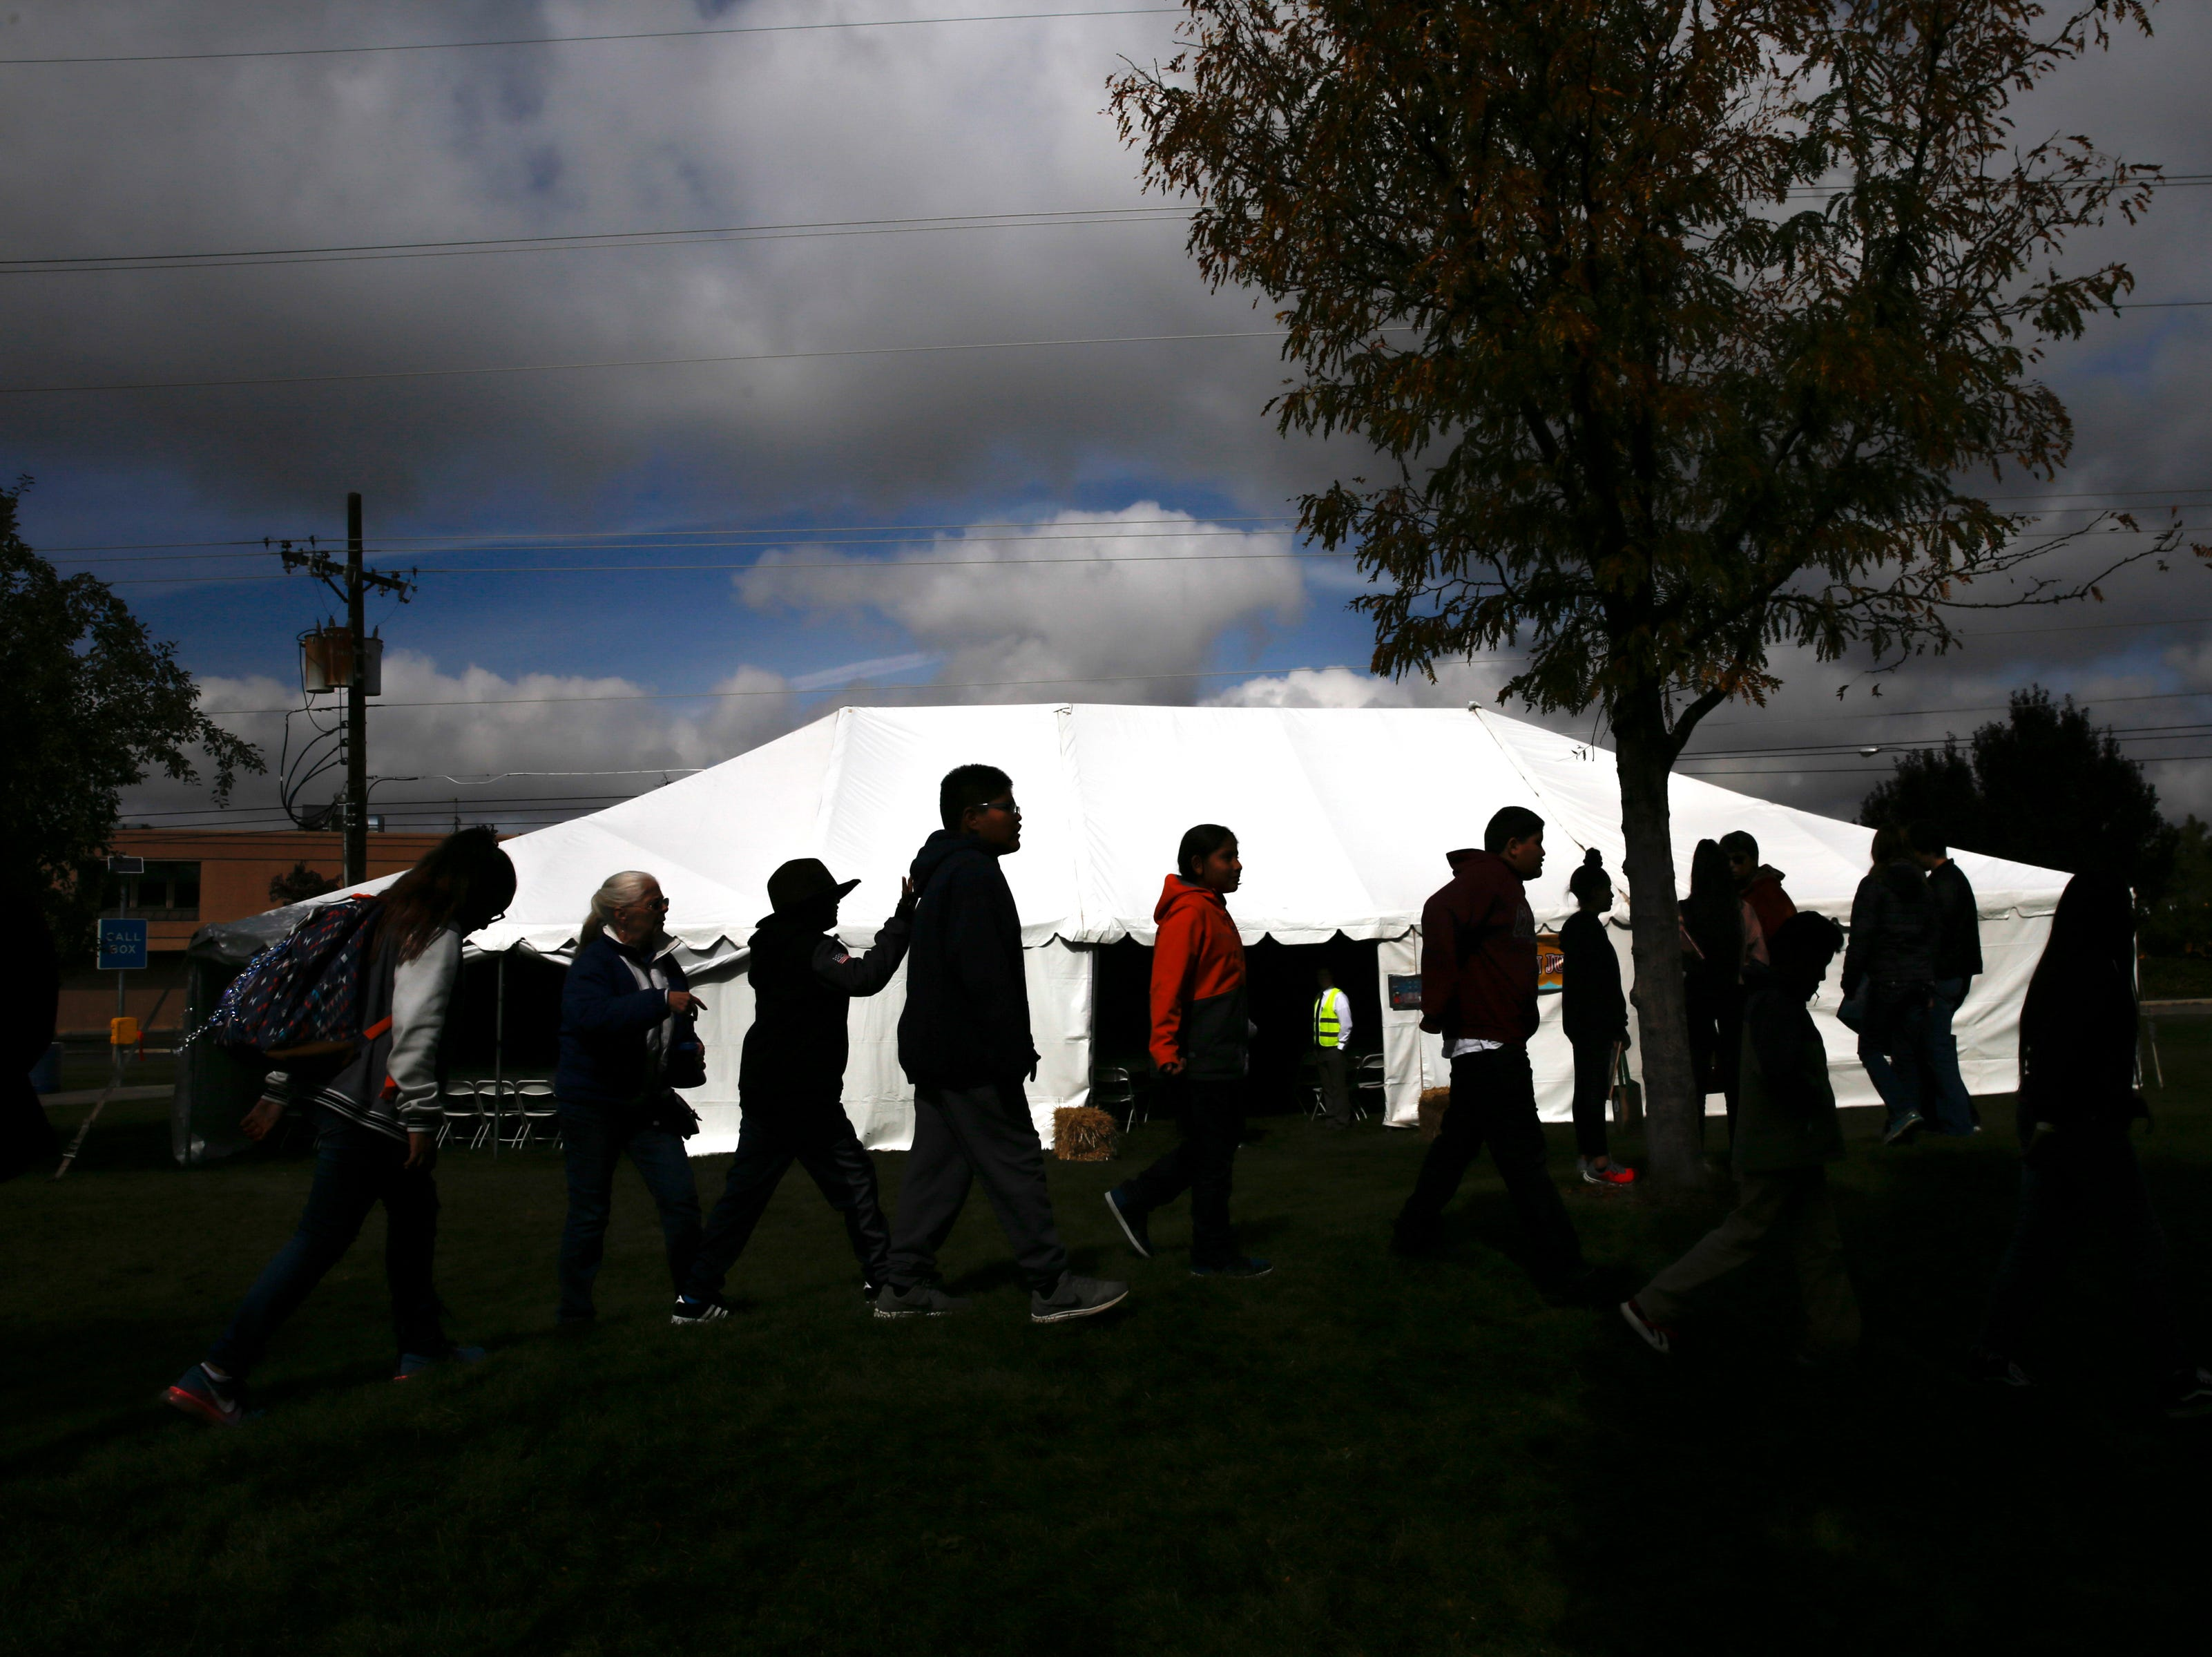 Local school children head to their next tent for more stories, Friday, Oct. 12, 2018 during the Four Corners Storytelling Festival at Berg Park in Farmington.